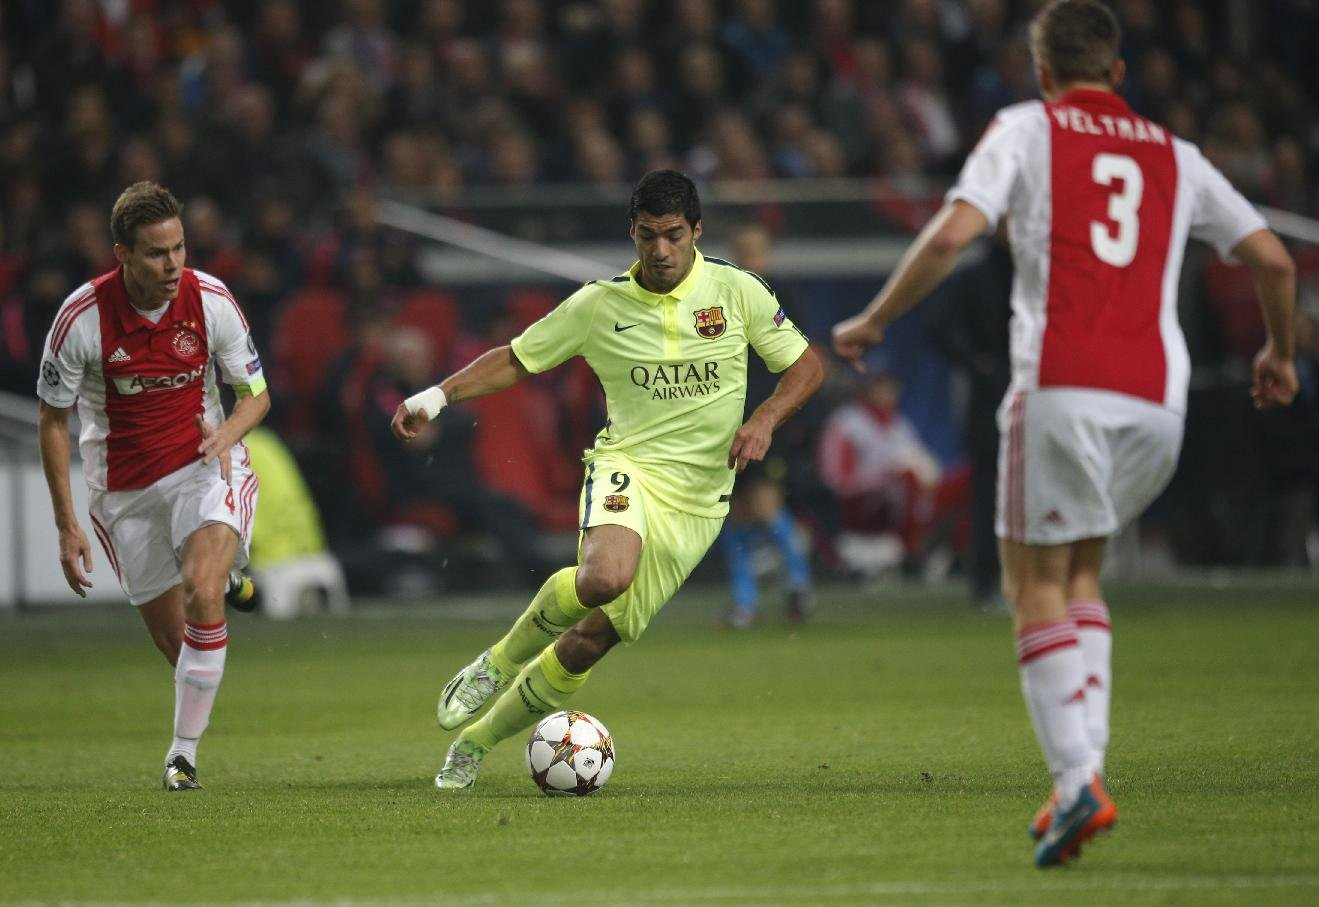 Luis Suárez makes his return to Amsterdam, in Ajax vs Barcelona in 2014-15